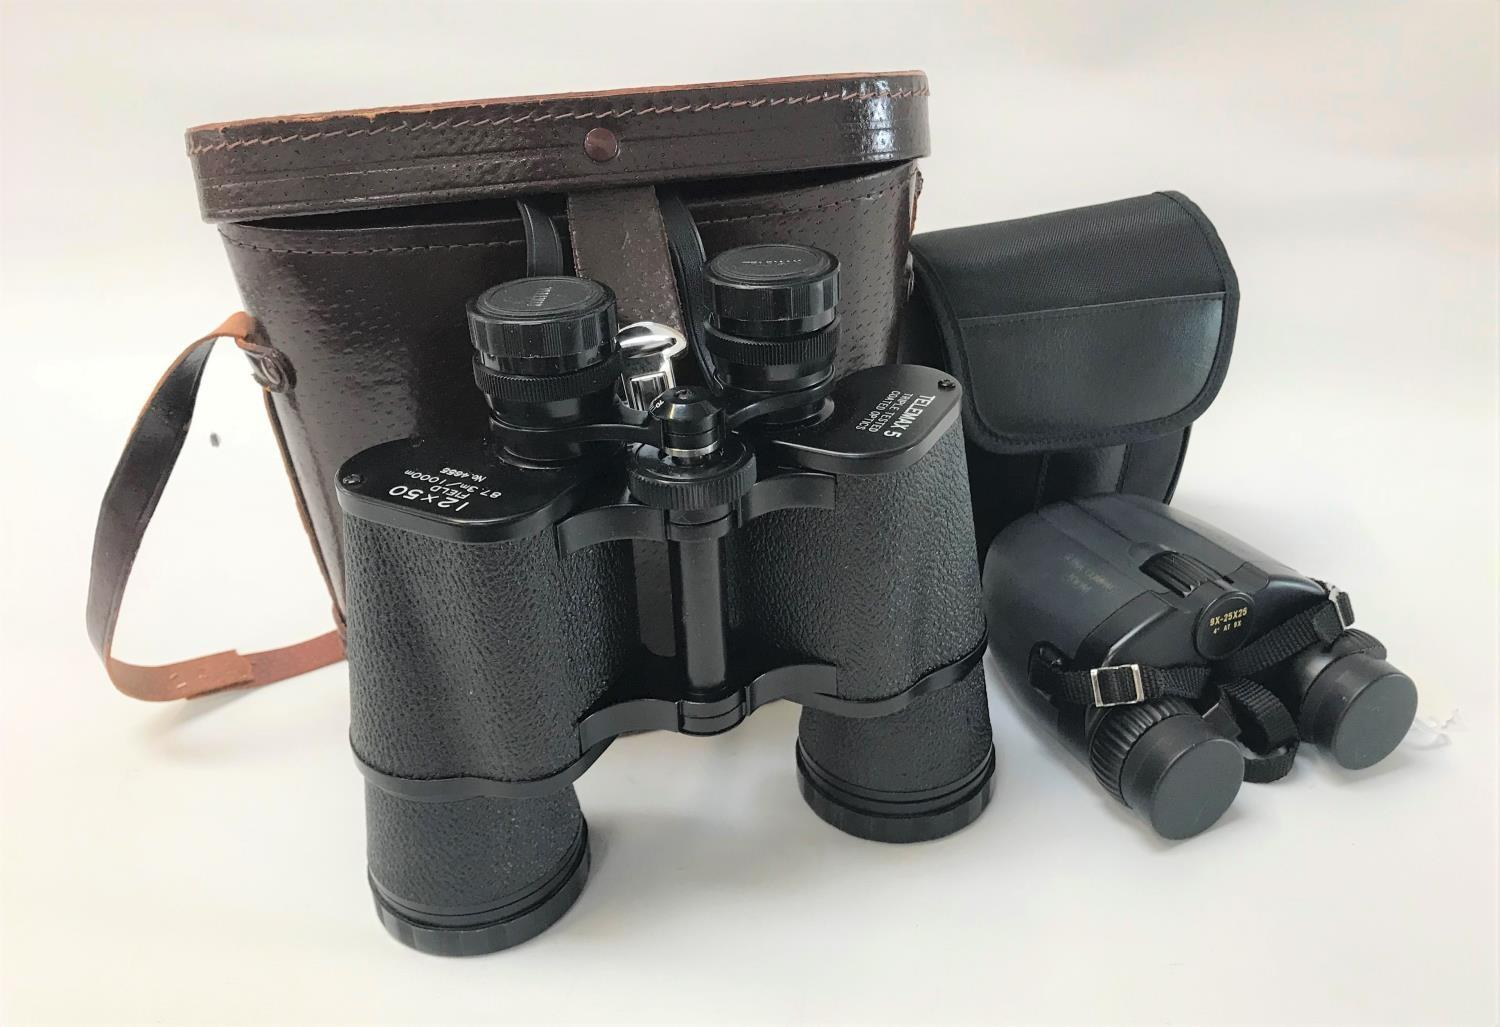 Lot 247 - CASED PAIR OF TELEMAX 5 FIELD GLASSES with 12x50 magnification, together with a pair of Sunmor field